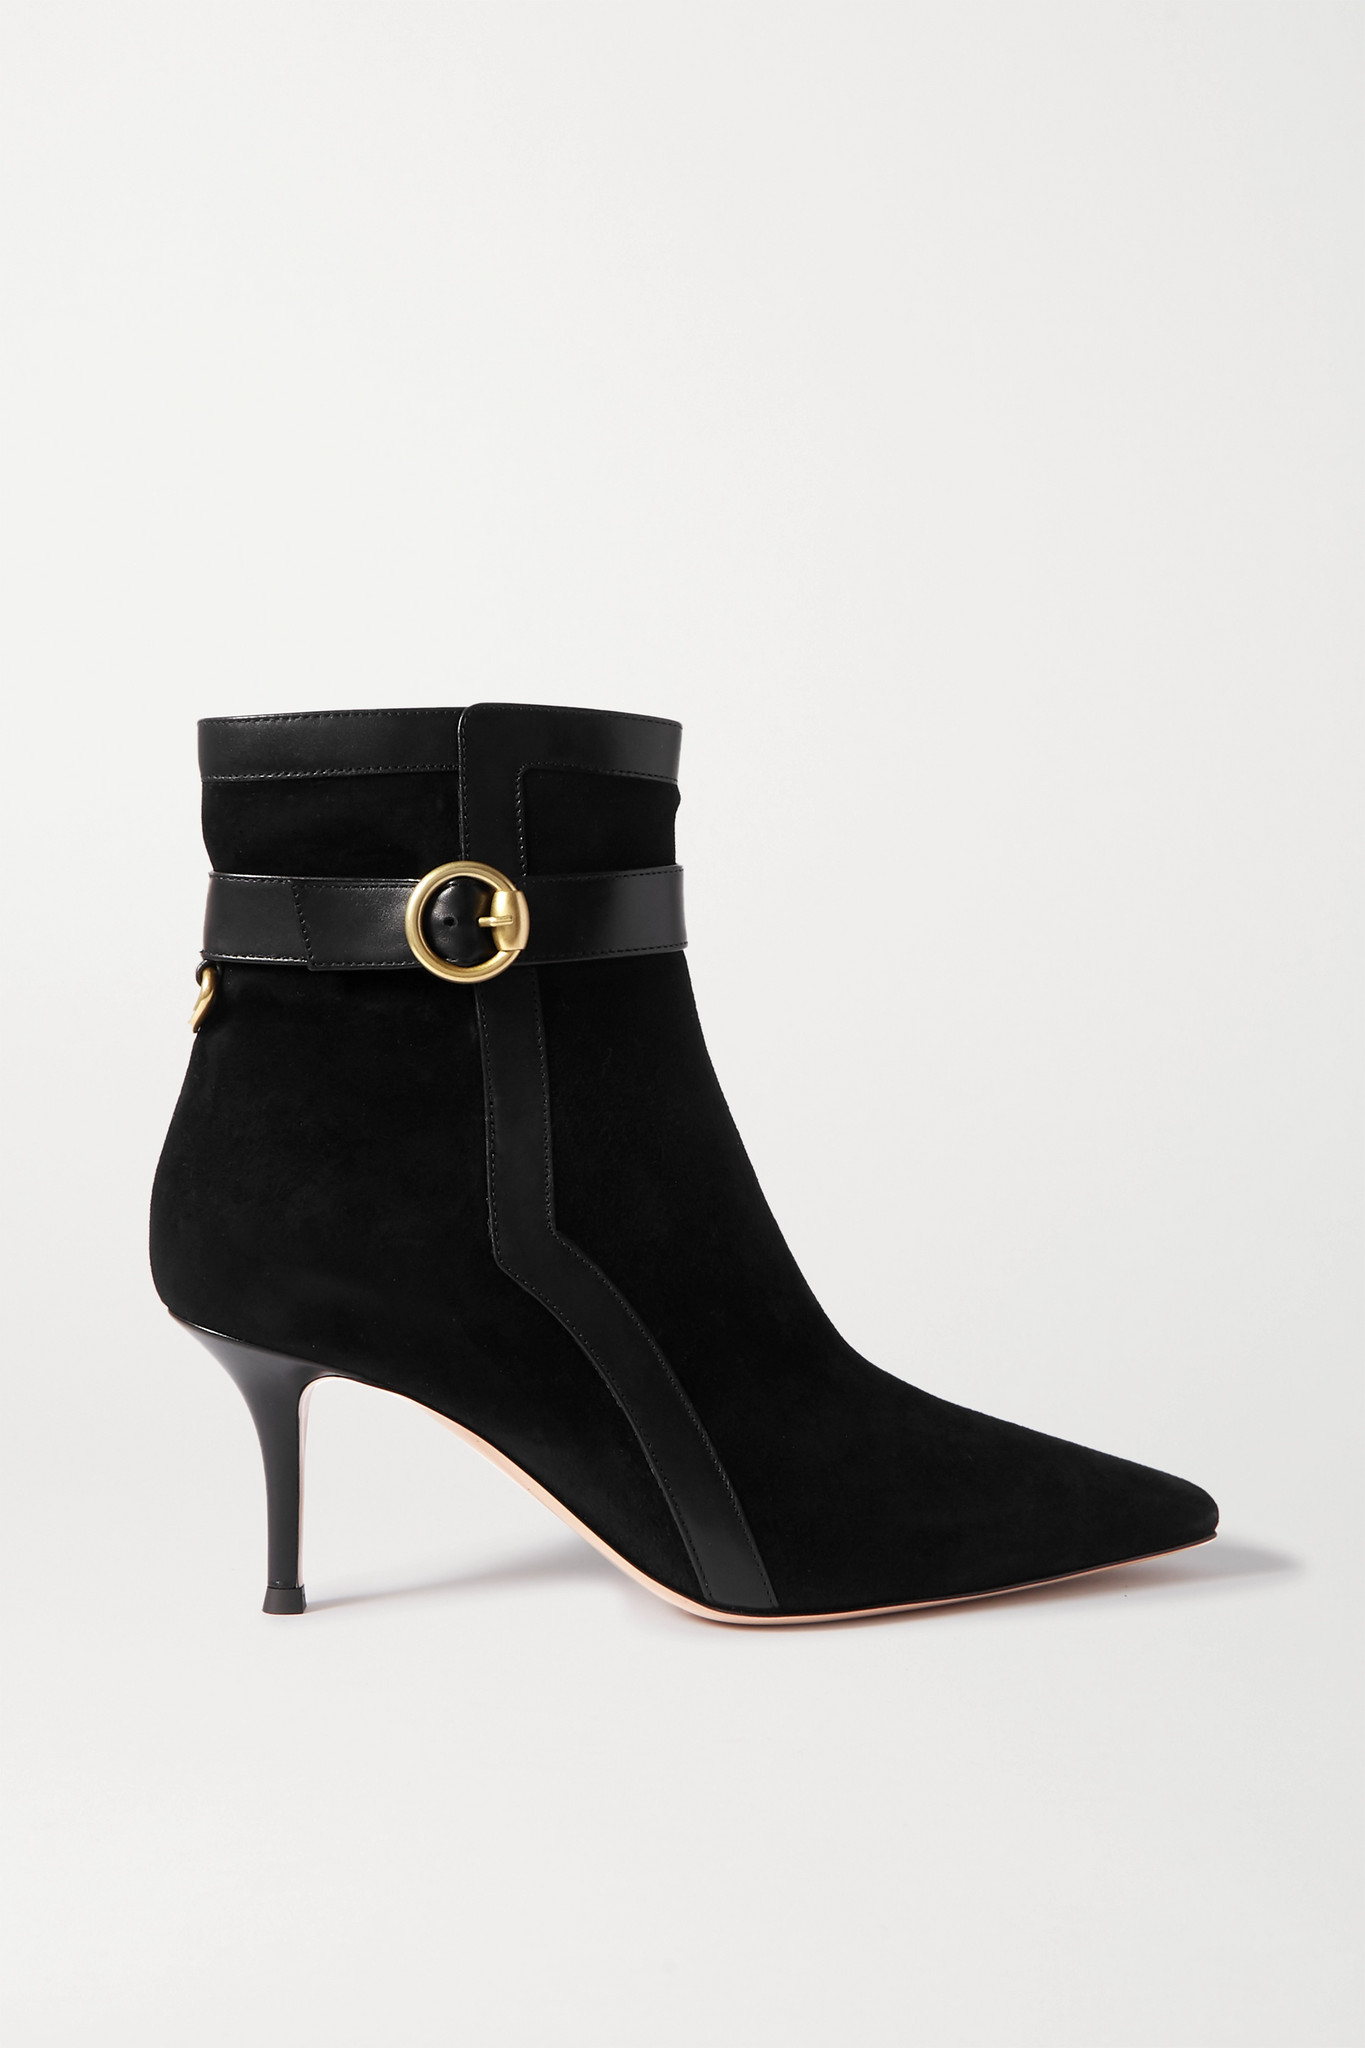 GIANVITO ROSSI - 70 Leather-trimmed Suede Ankle Boots - Black - IT38